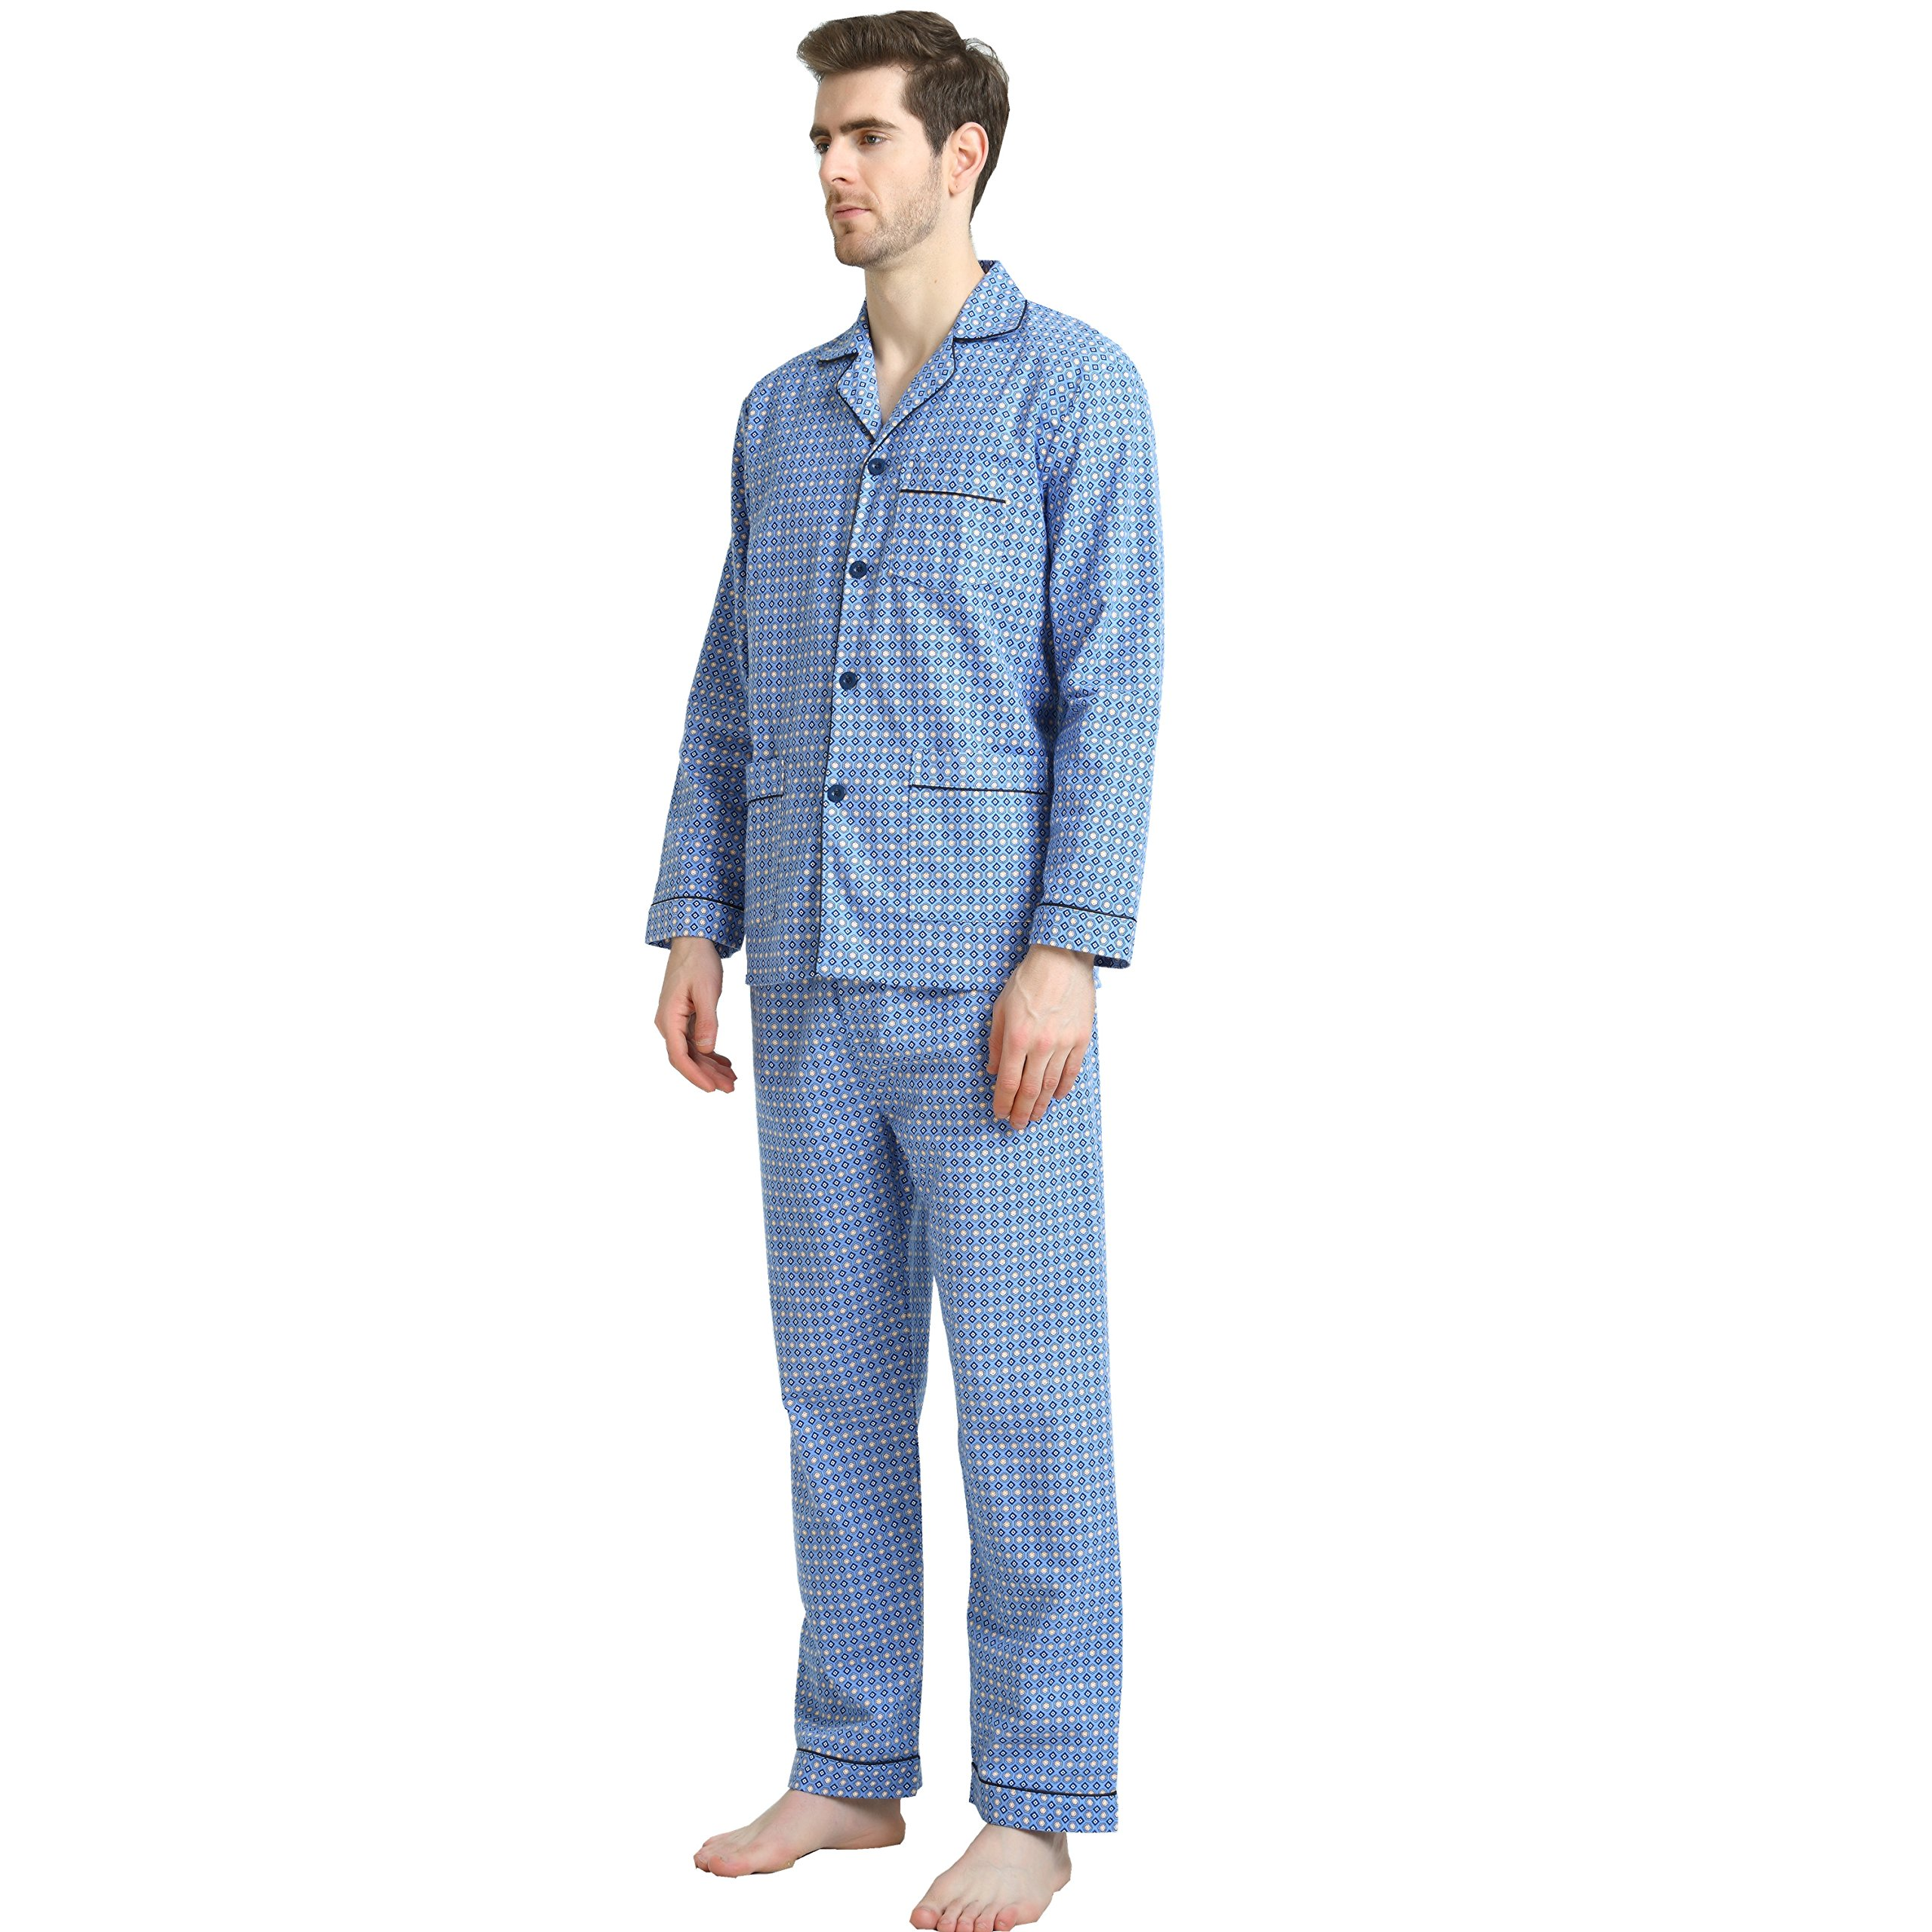 Cotton Sleepwear/Loungewear Sets for Men,100% Fleece Warm Pj Top and Bottom by GLOBAL (Image #4)